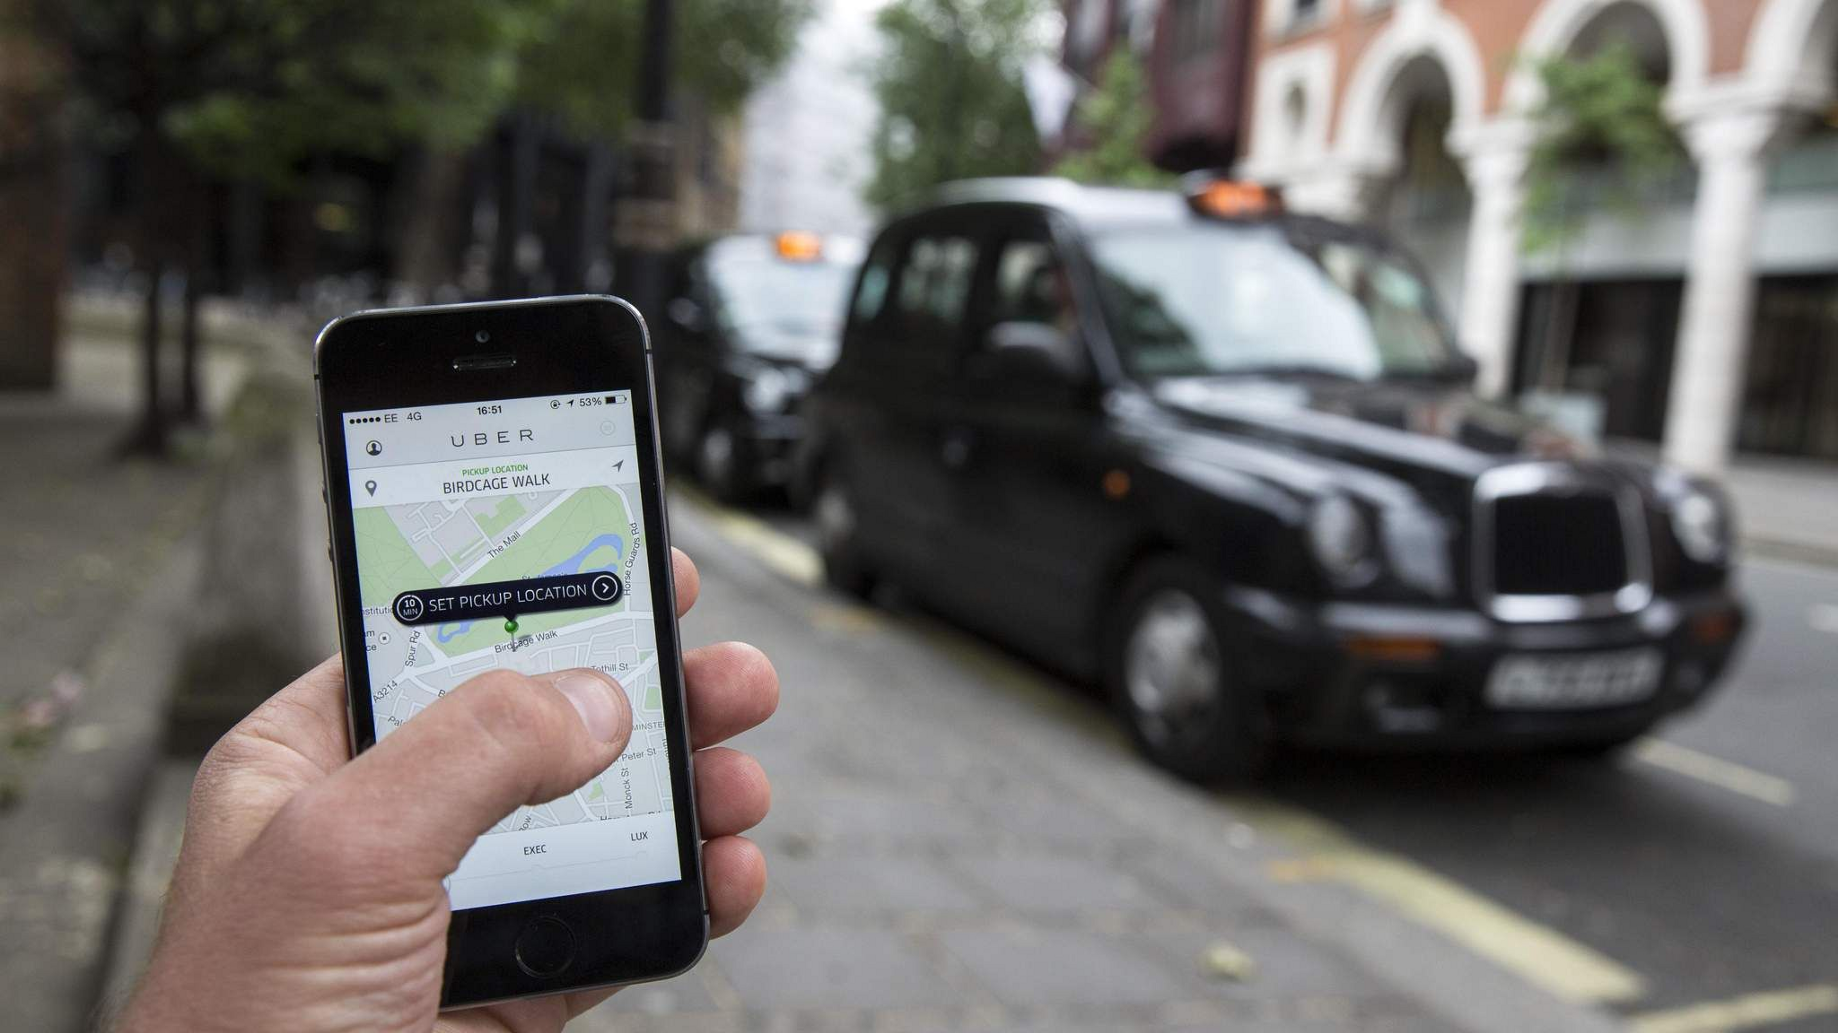 Gett Taxi have the right idea  Fixed fare cabs are the way